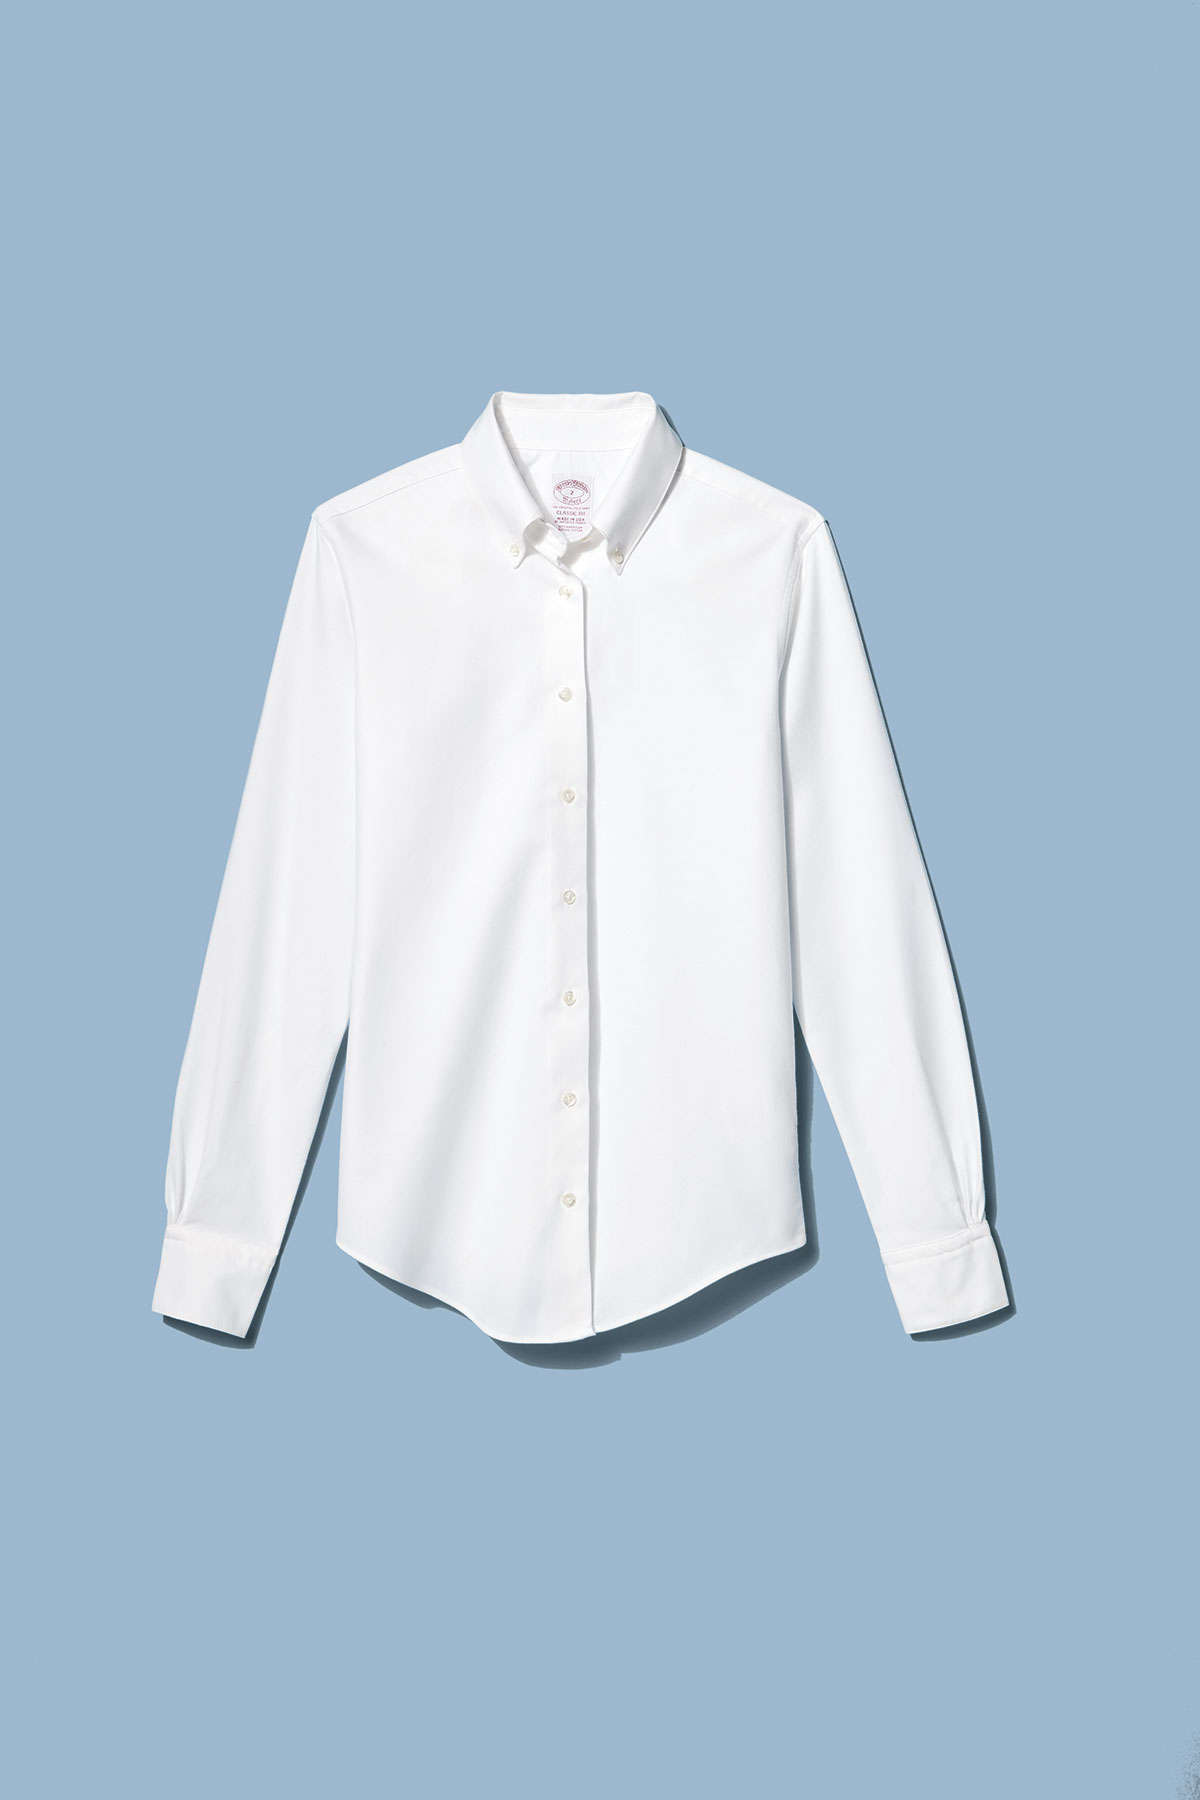 Brooks Brothers Classic-Fit Supima Cotton Oxford Button-Down Shirt (0618FAS)